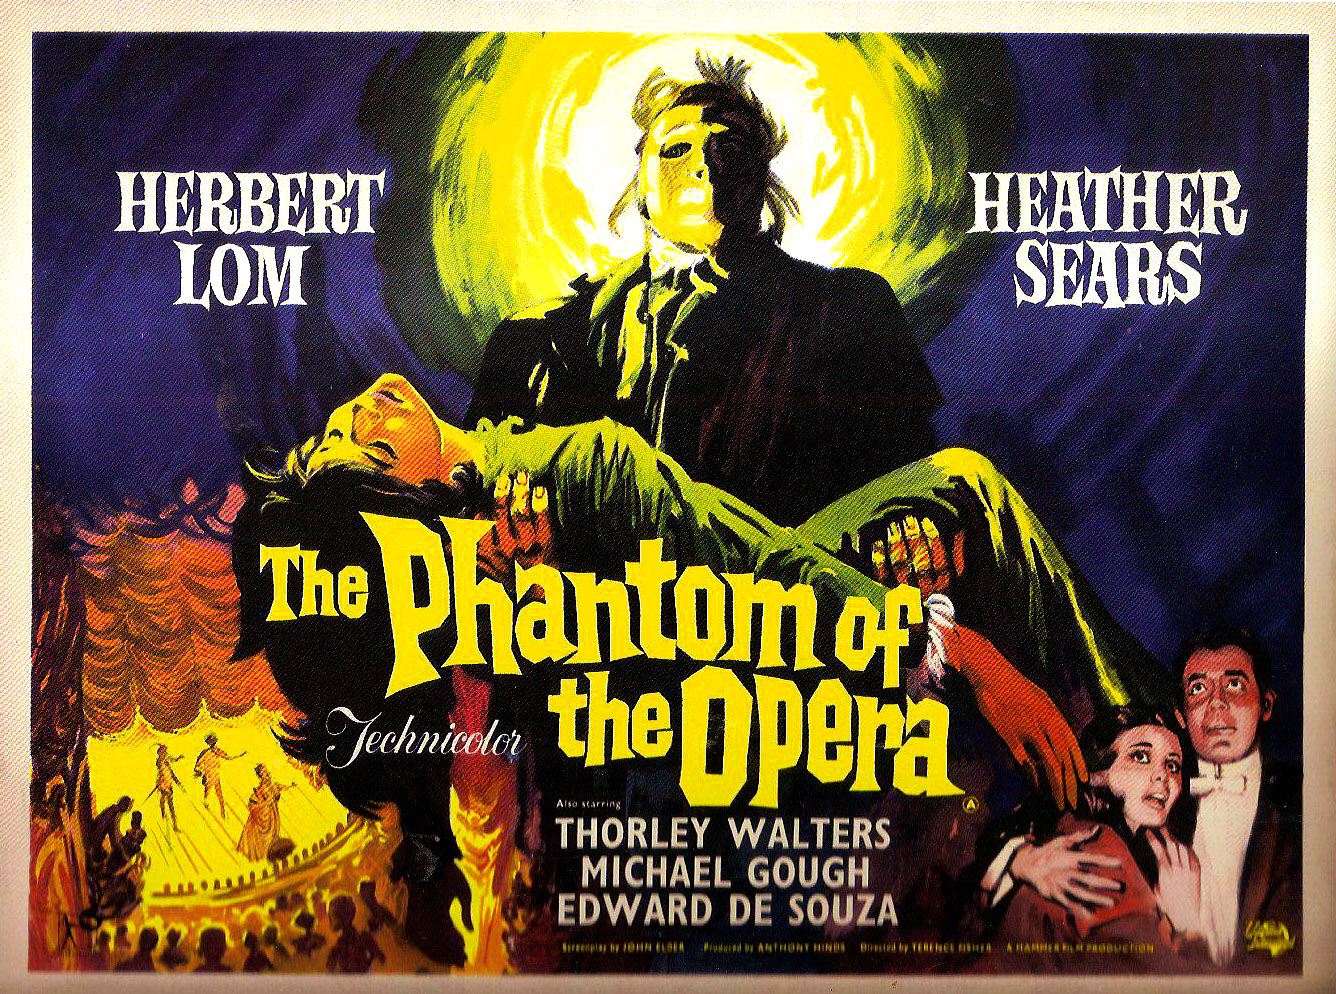 Hammer horror films of movies remarkable, useful